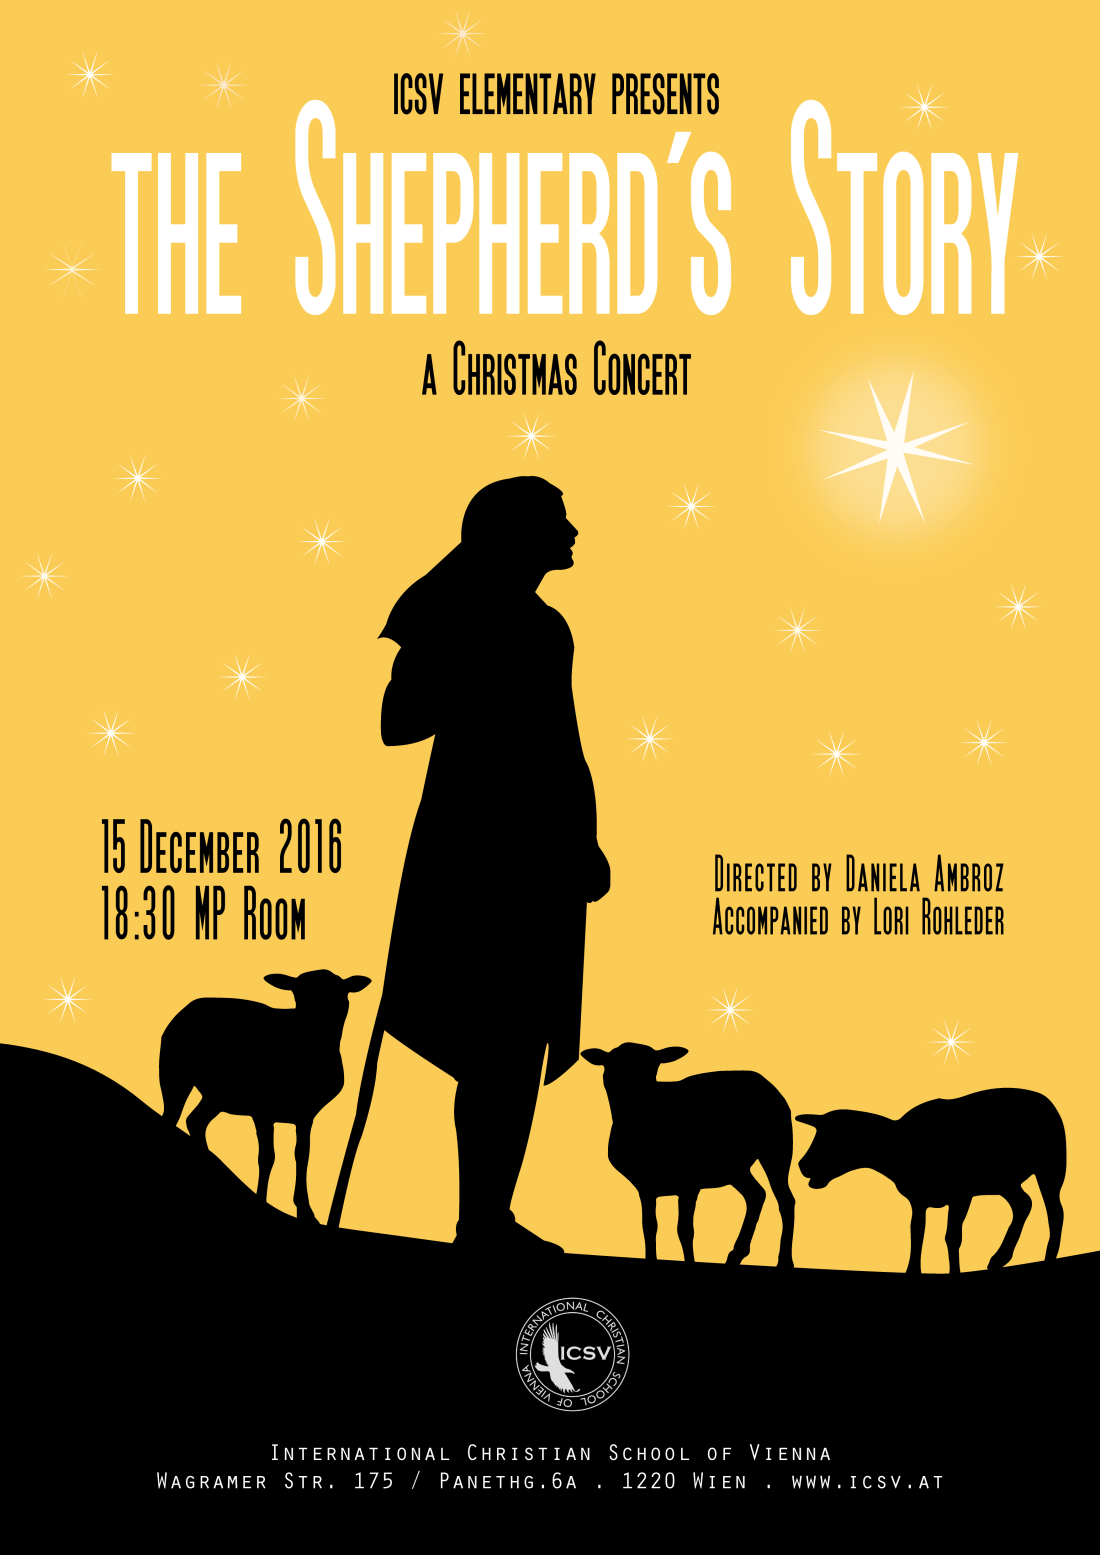 shepherds-story-copy-2-01